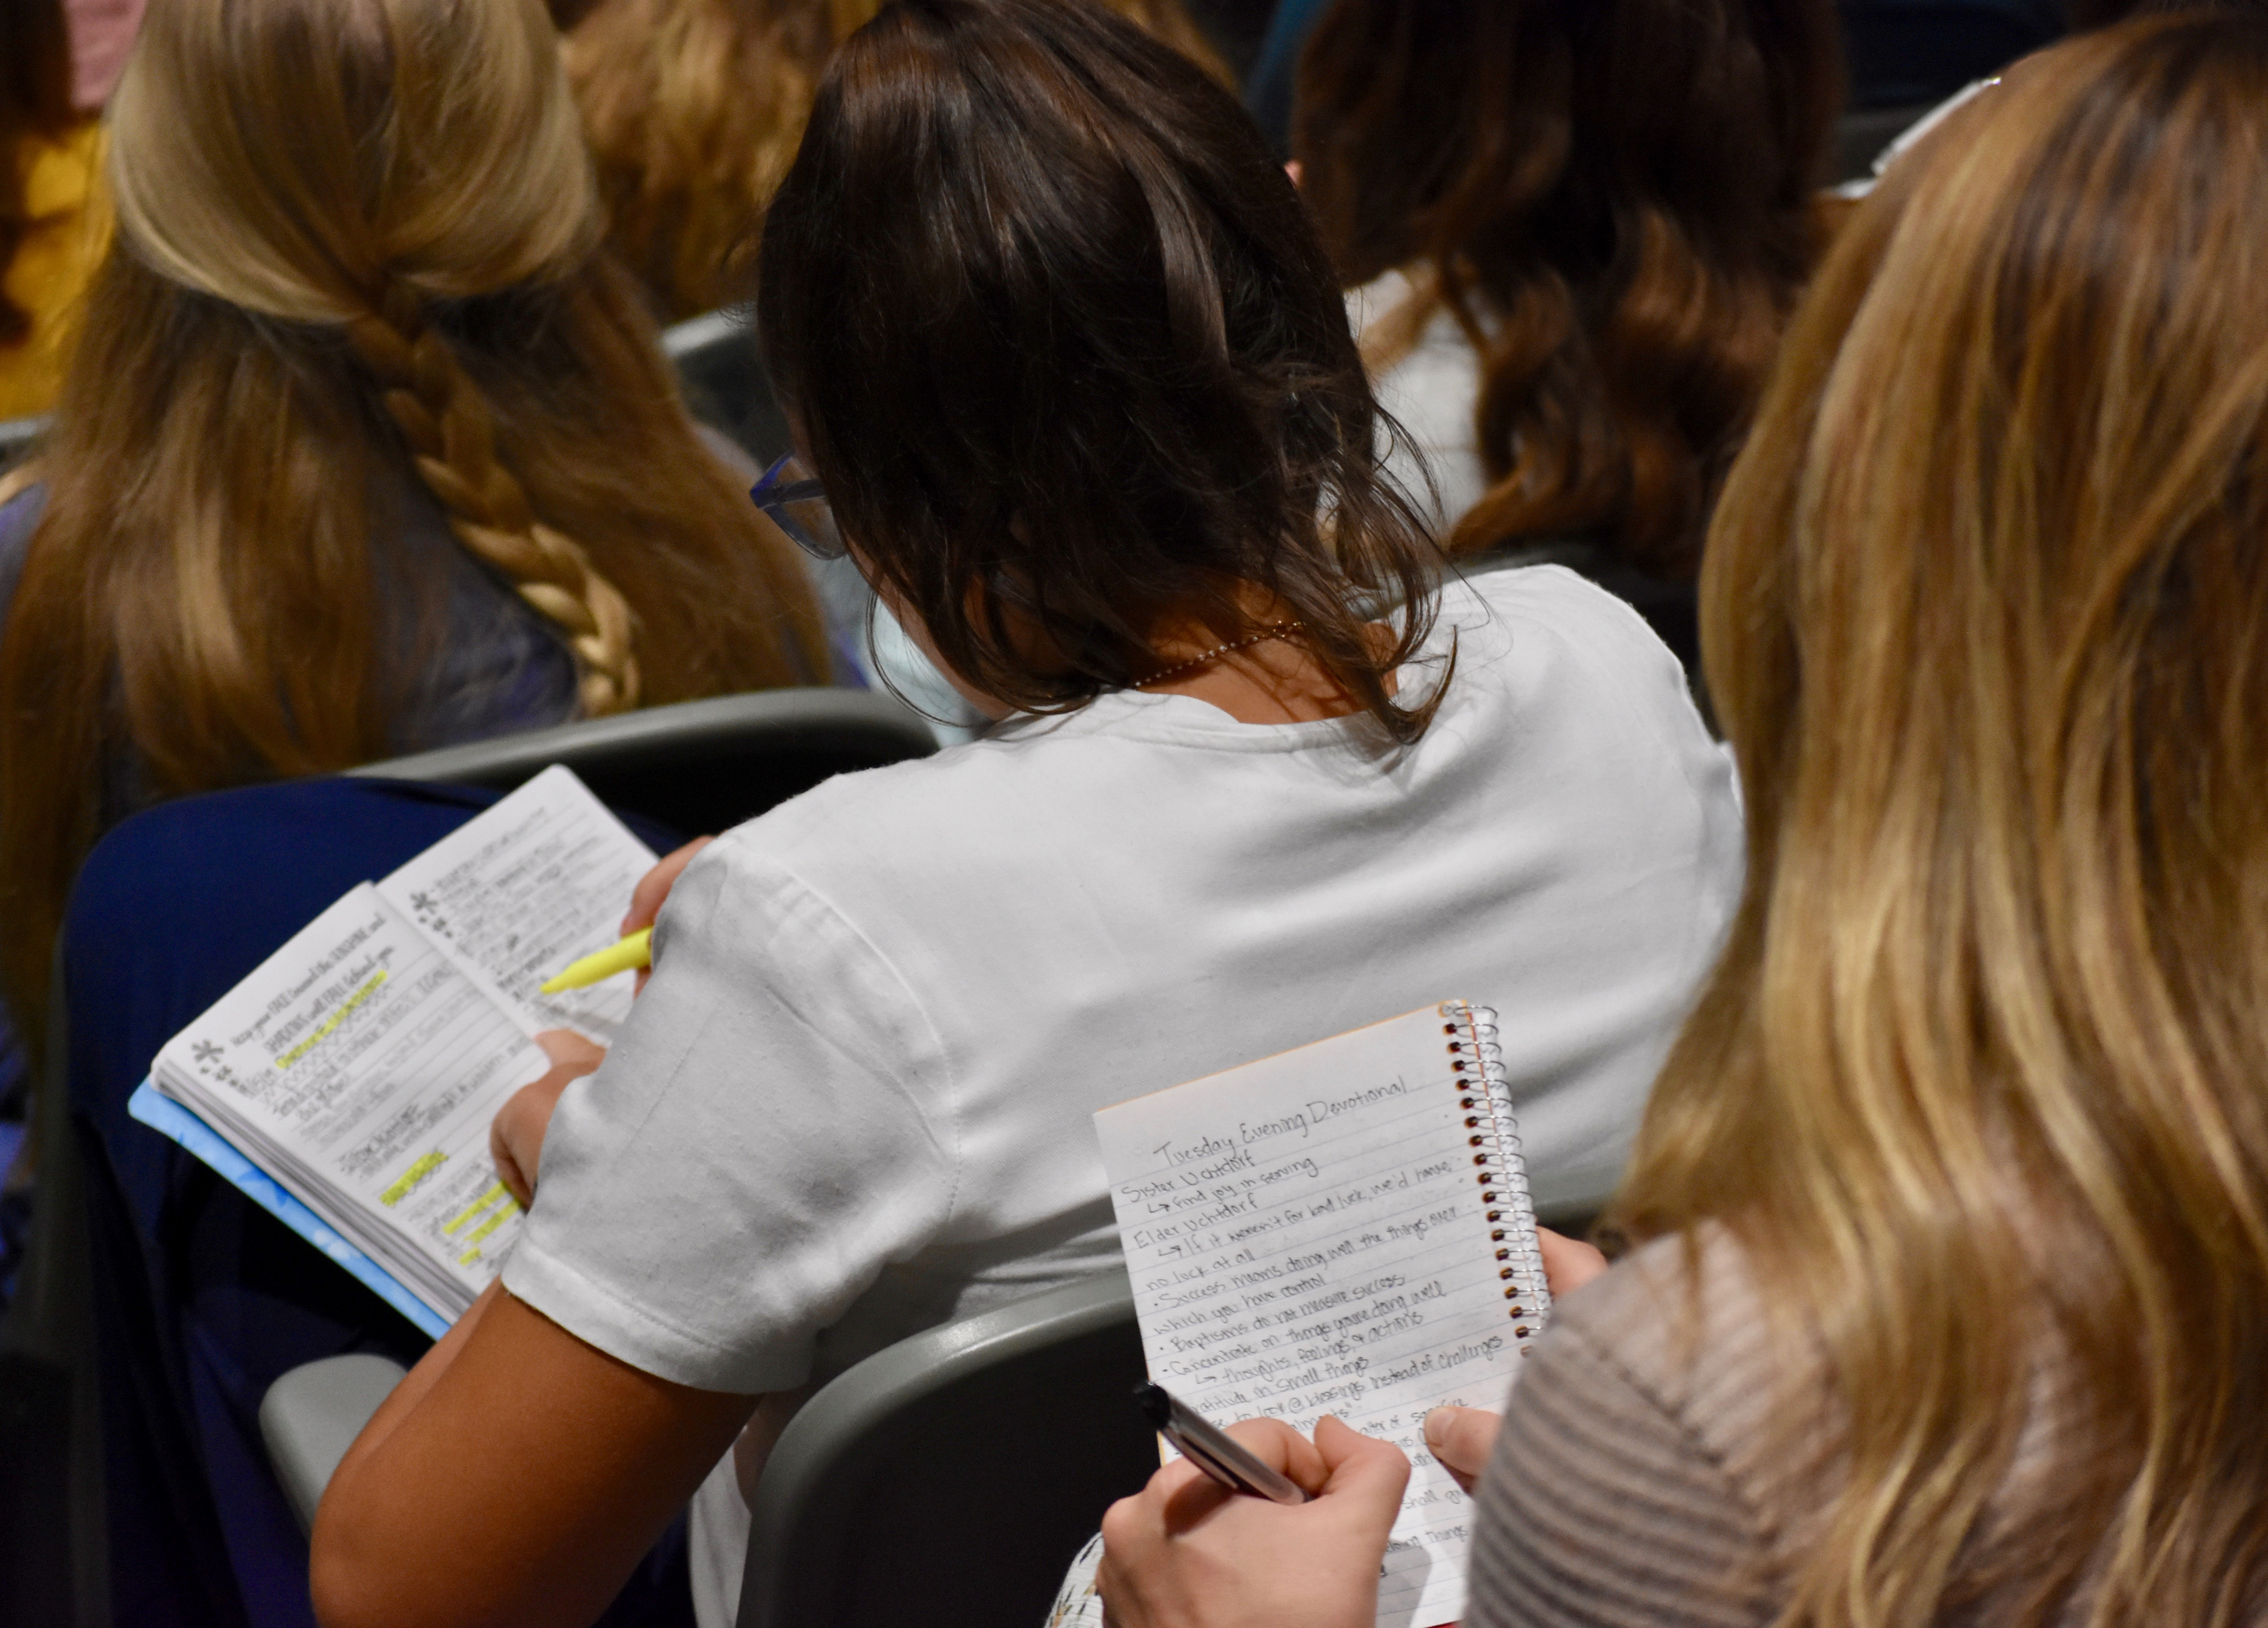 Sister missionaries take notes during a Nov. 5, 2019, devotional with Elder Dieter F. Uchtdorf at the Provo Missionary Training Center.